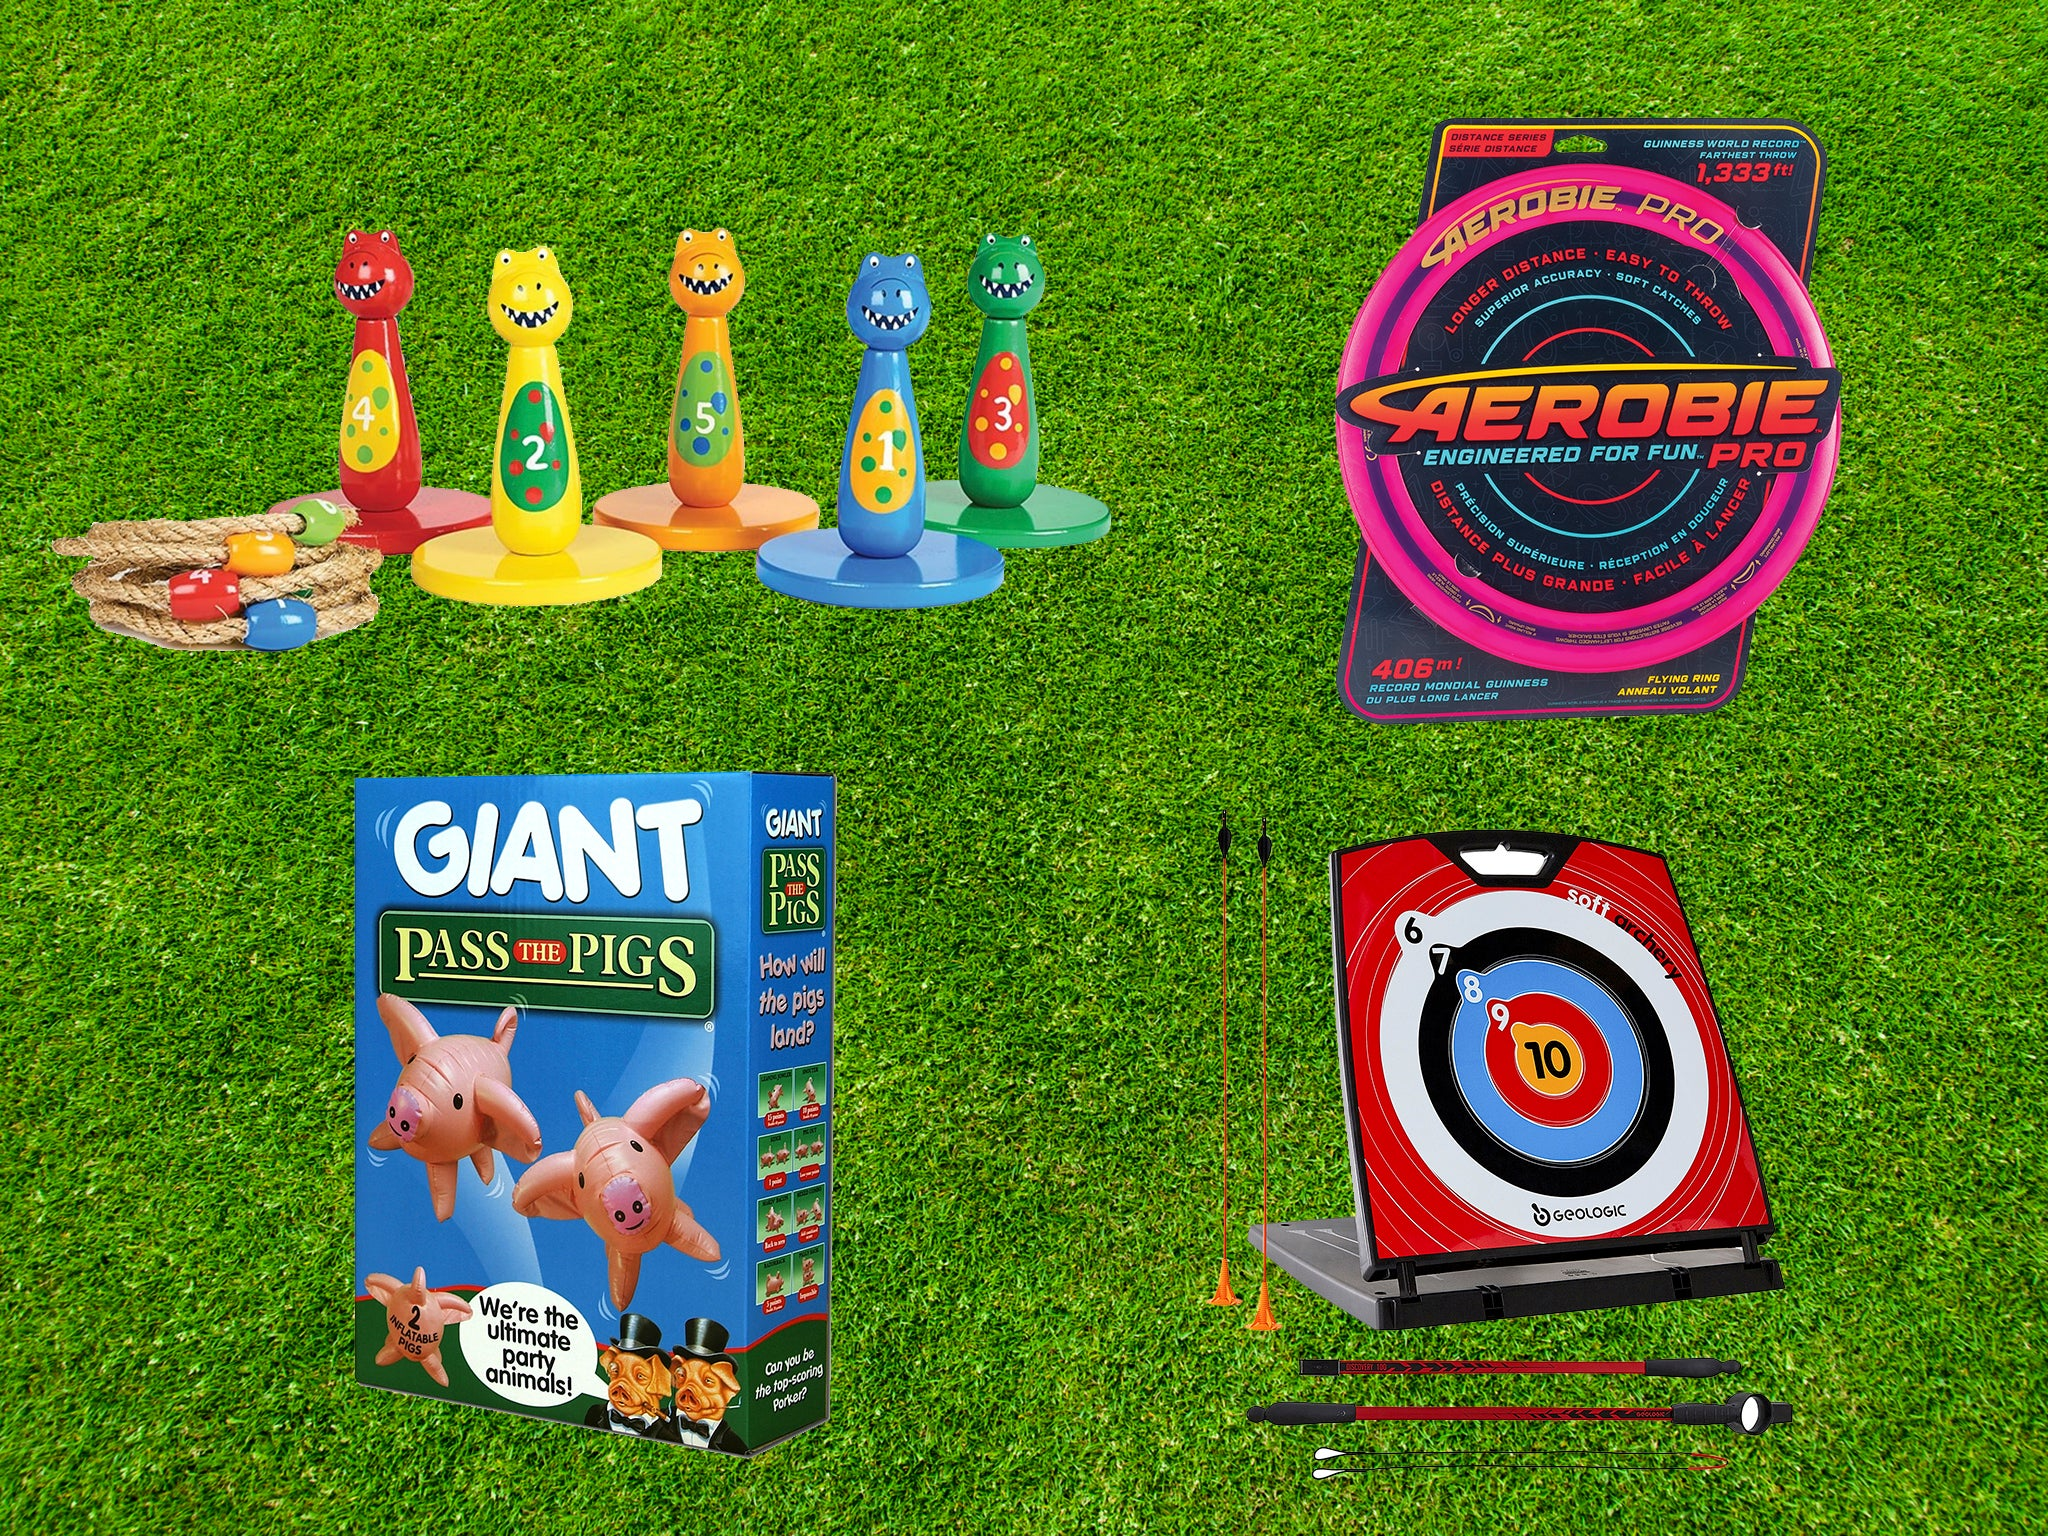 93d825eee Best outdoor games to get the whole family playing together in the sun